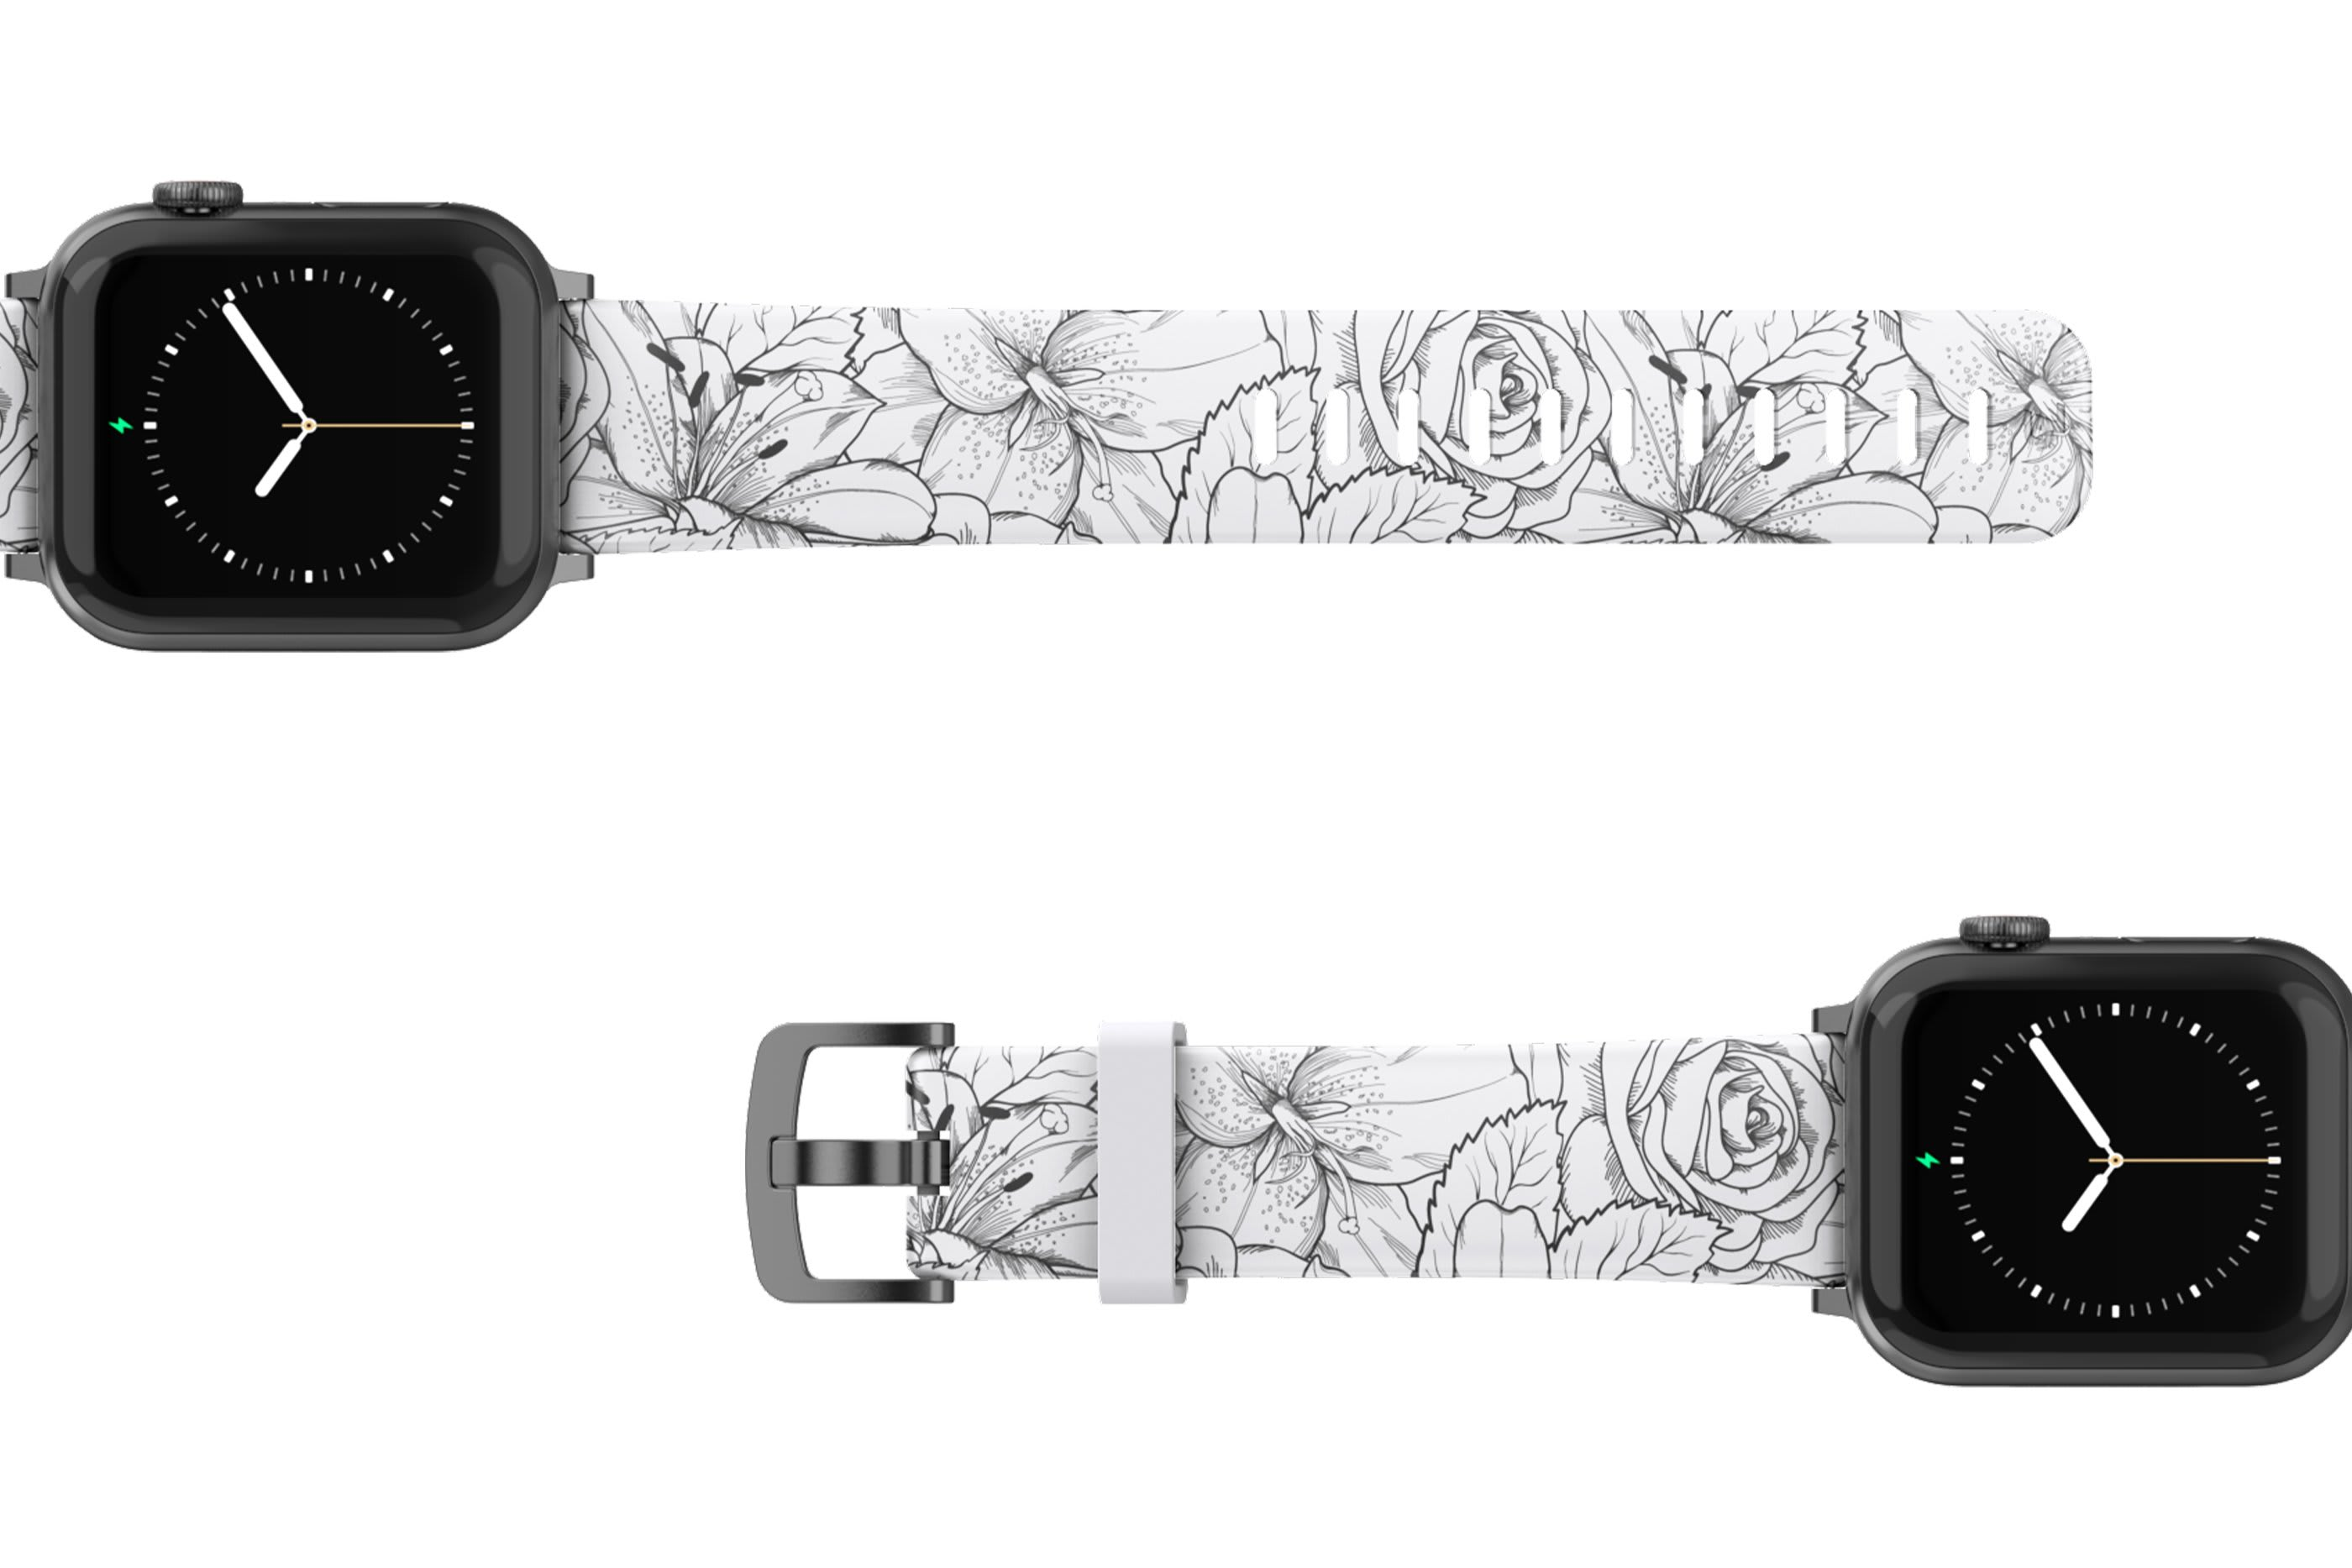 Winter Rose Apple Watch Band with gray hardware viewed top down